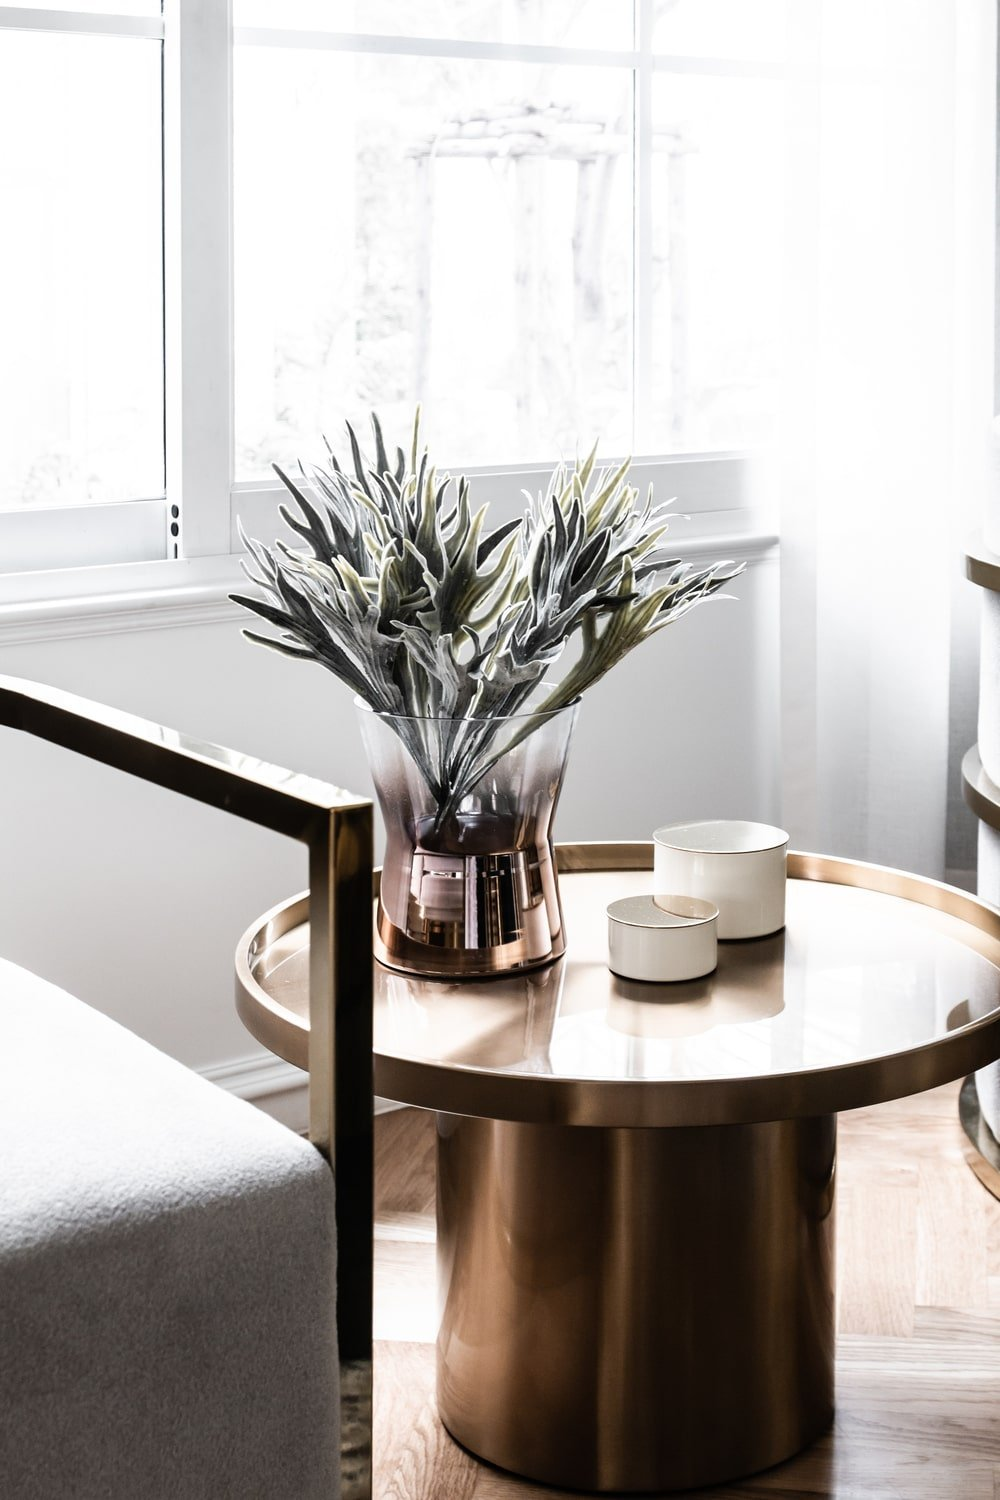 This is a close look at the small round side table of the arm chairs with a shiny metallic tone to it brightened by the window.